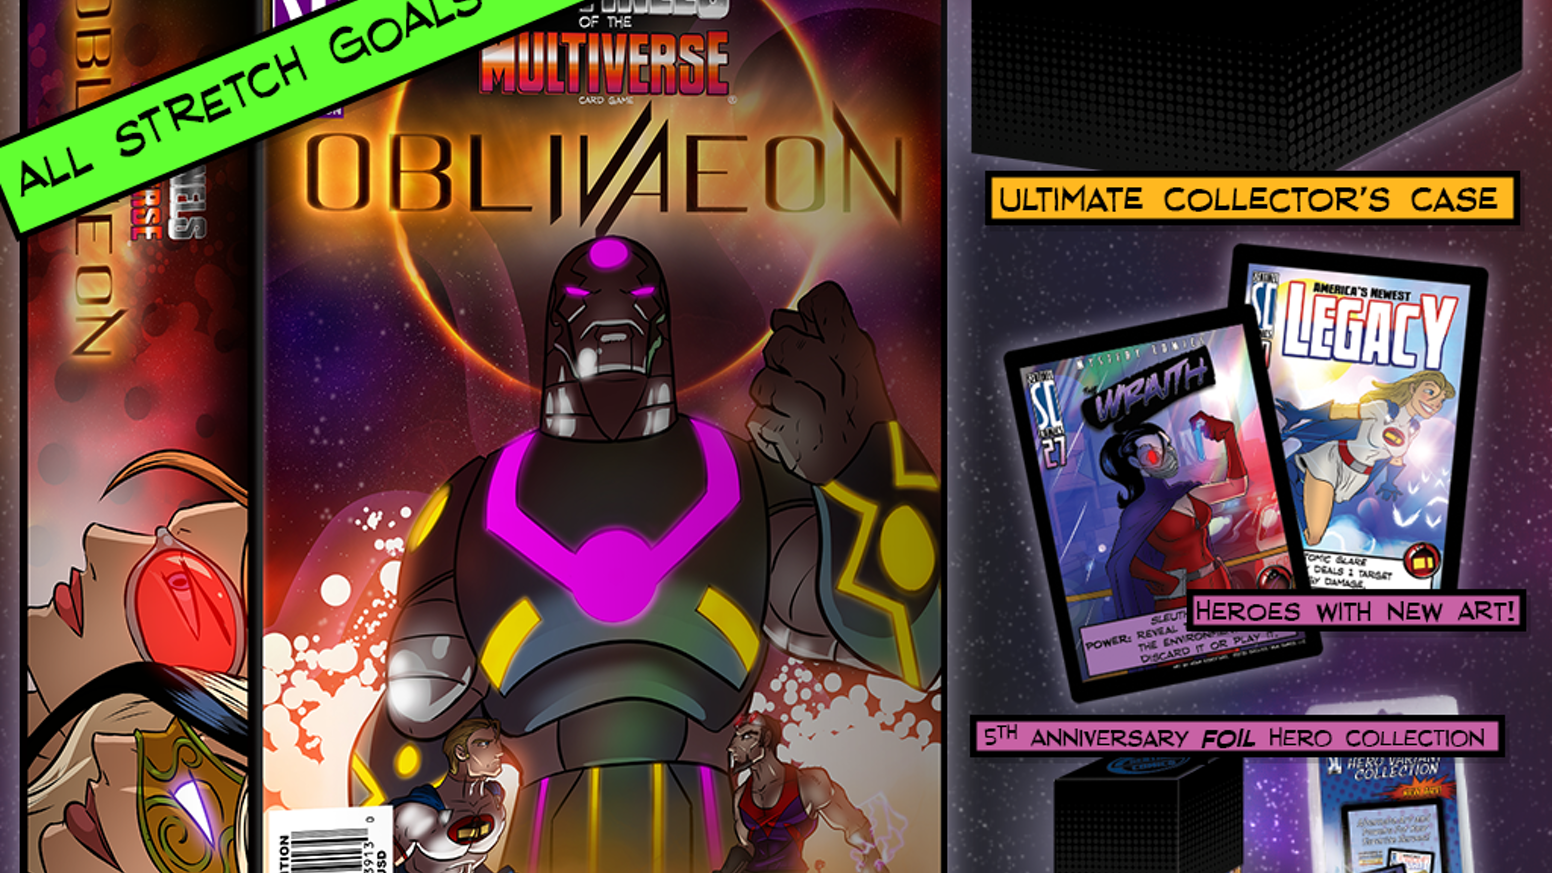 The end of the Multiverse! Featuring the final SotM expansion, packs of every variant card ever, and the Ultimate Collector's Case!